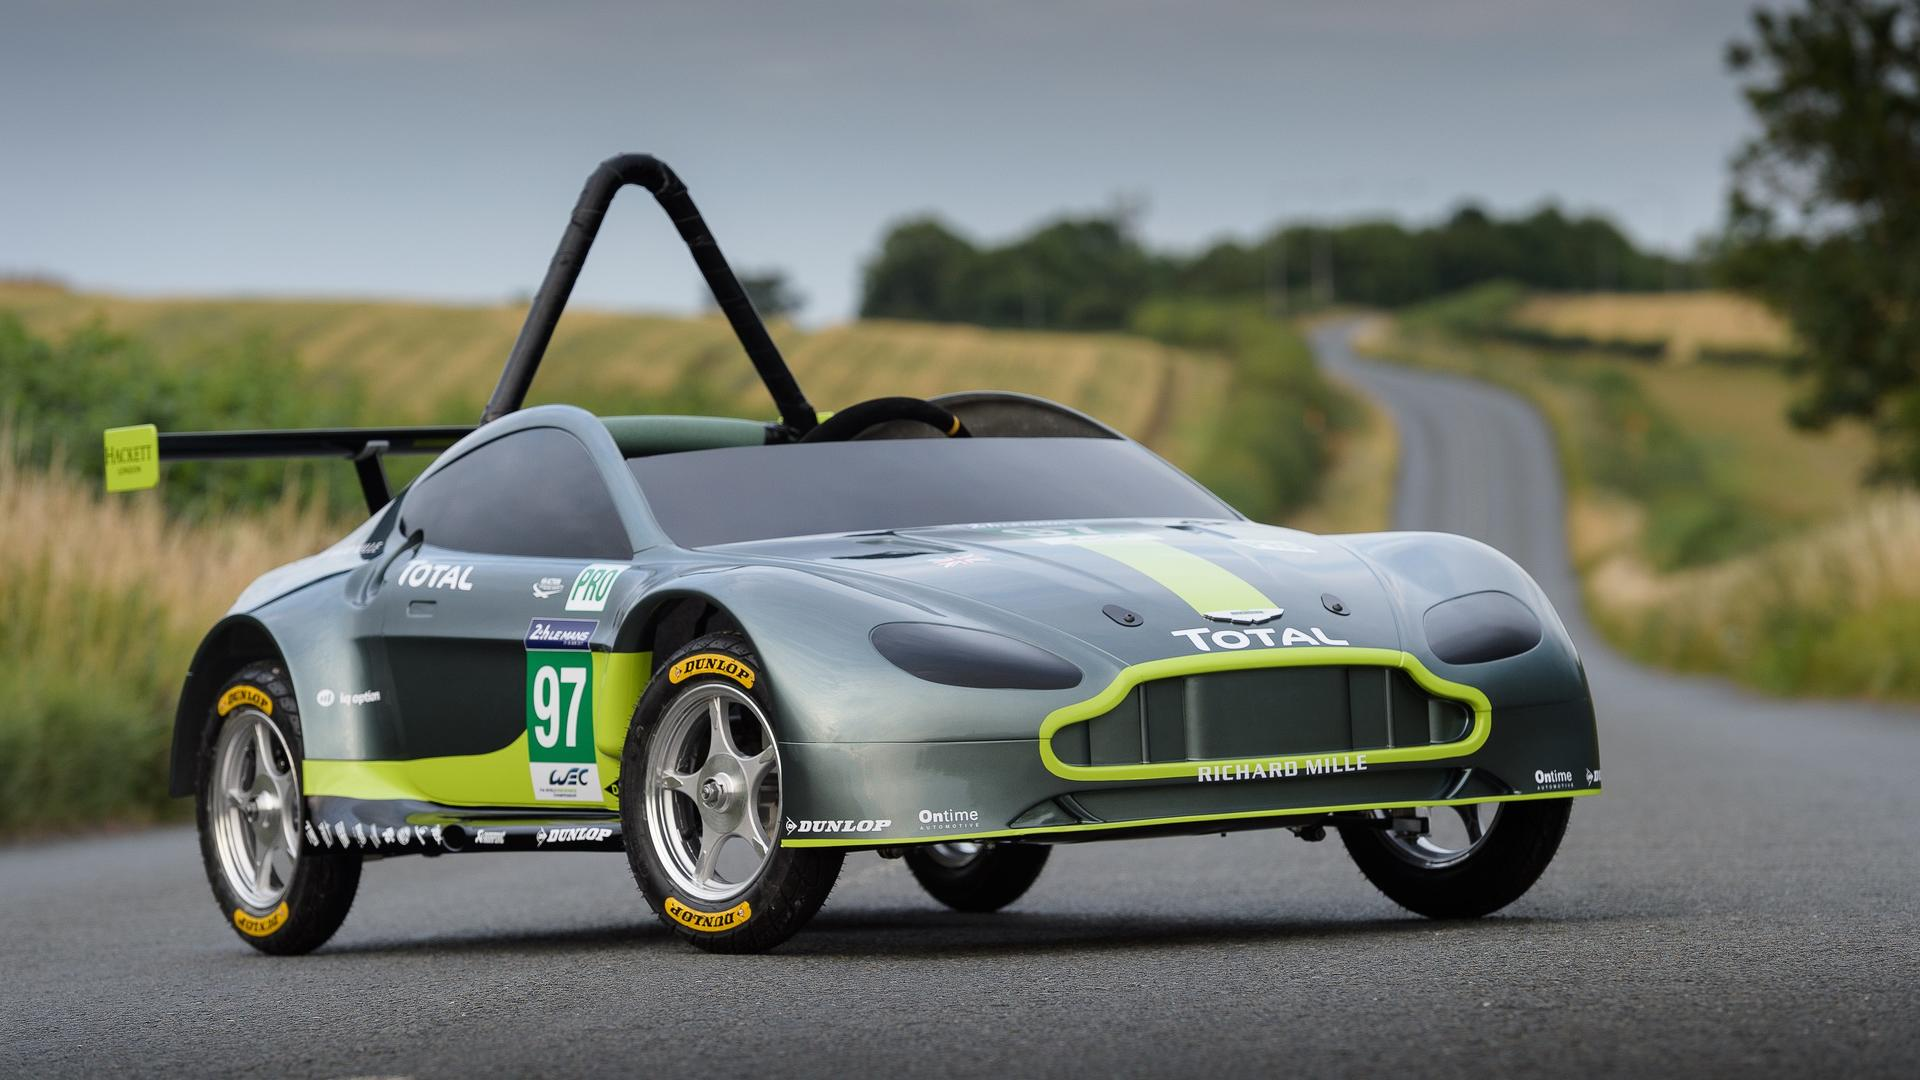 This Is The New Gravity Powered Aston Martin Race Car